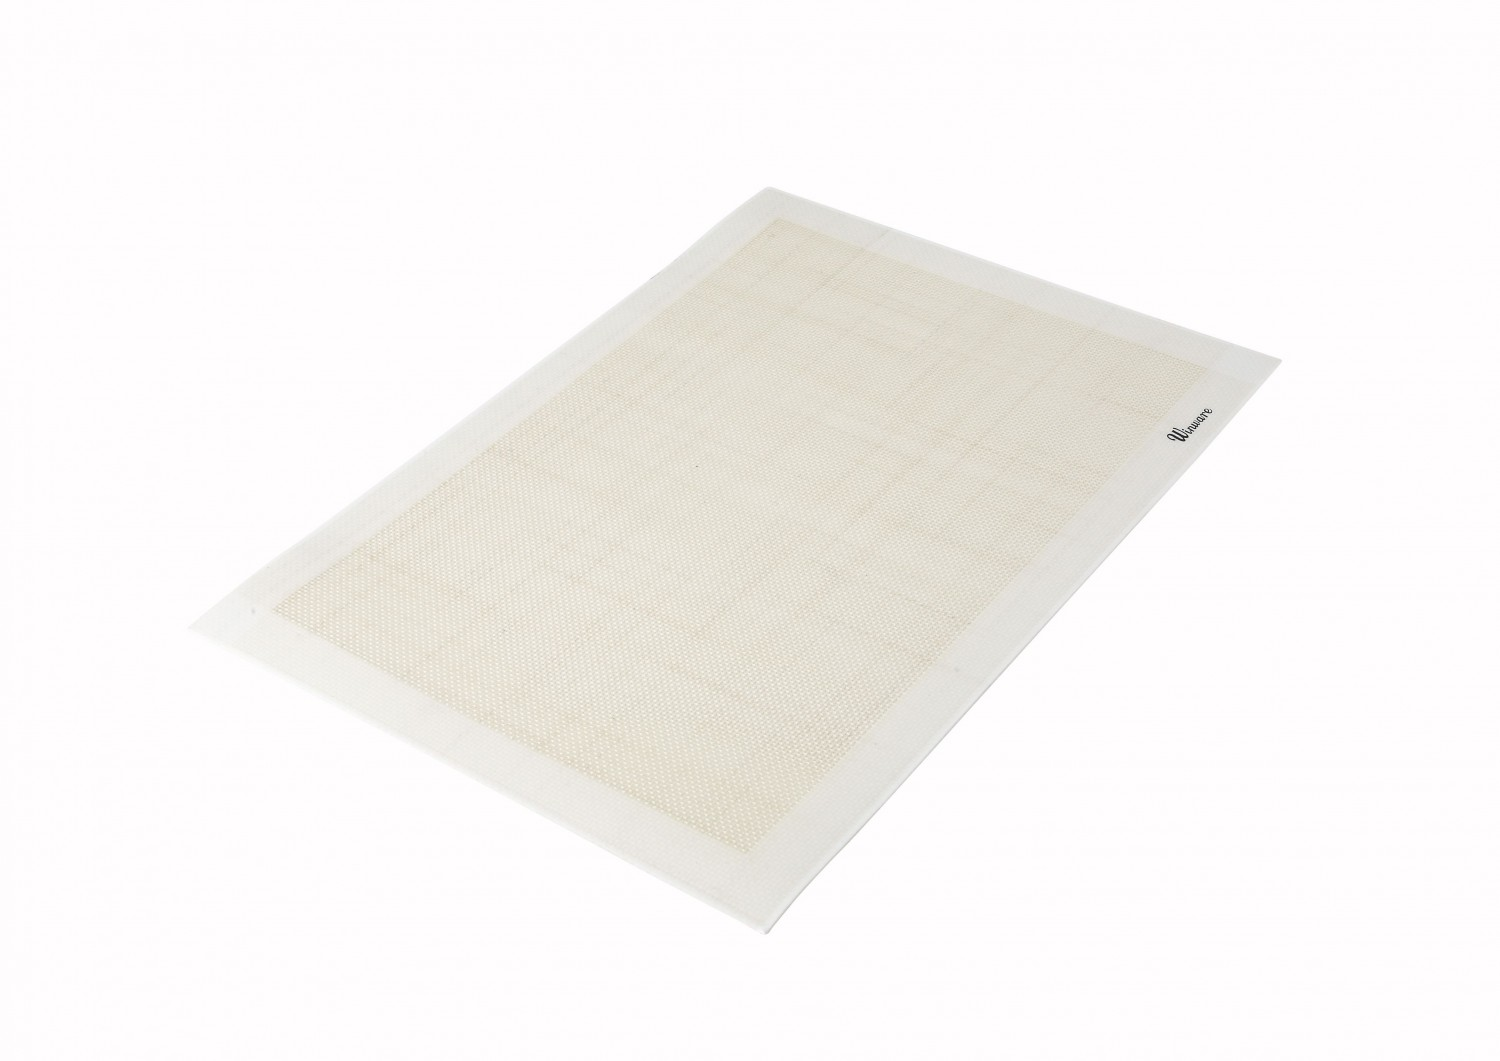 Winco SBS-16 Silicone Square Baking Sheet